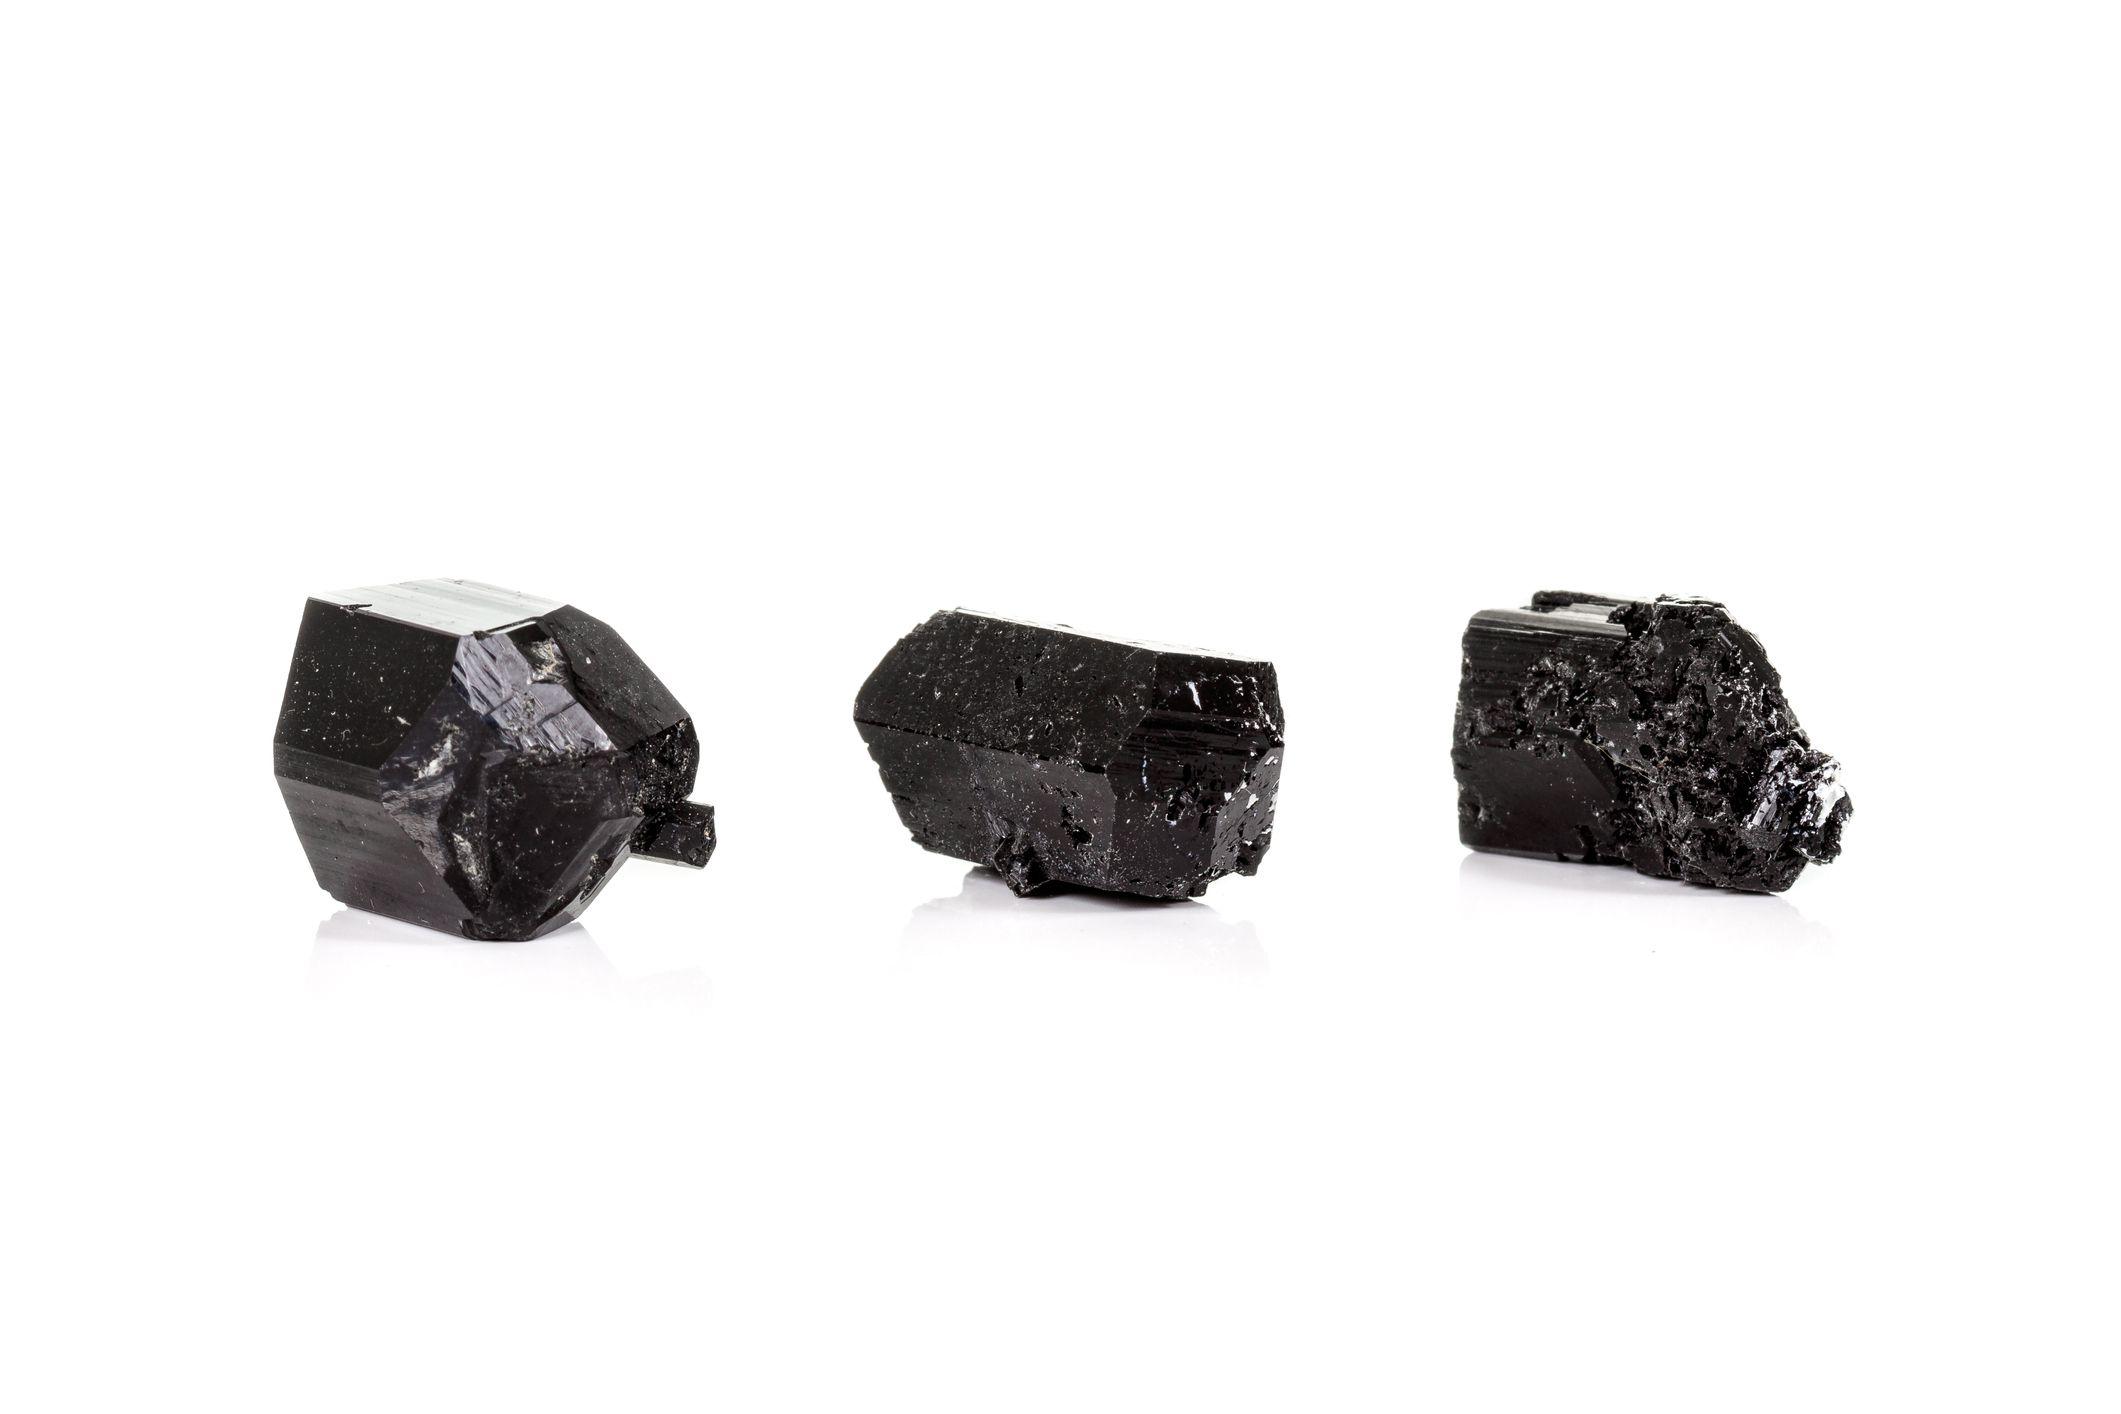 three pieces of black tourmaline crystals for space clearing